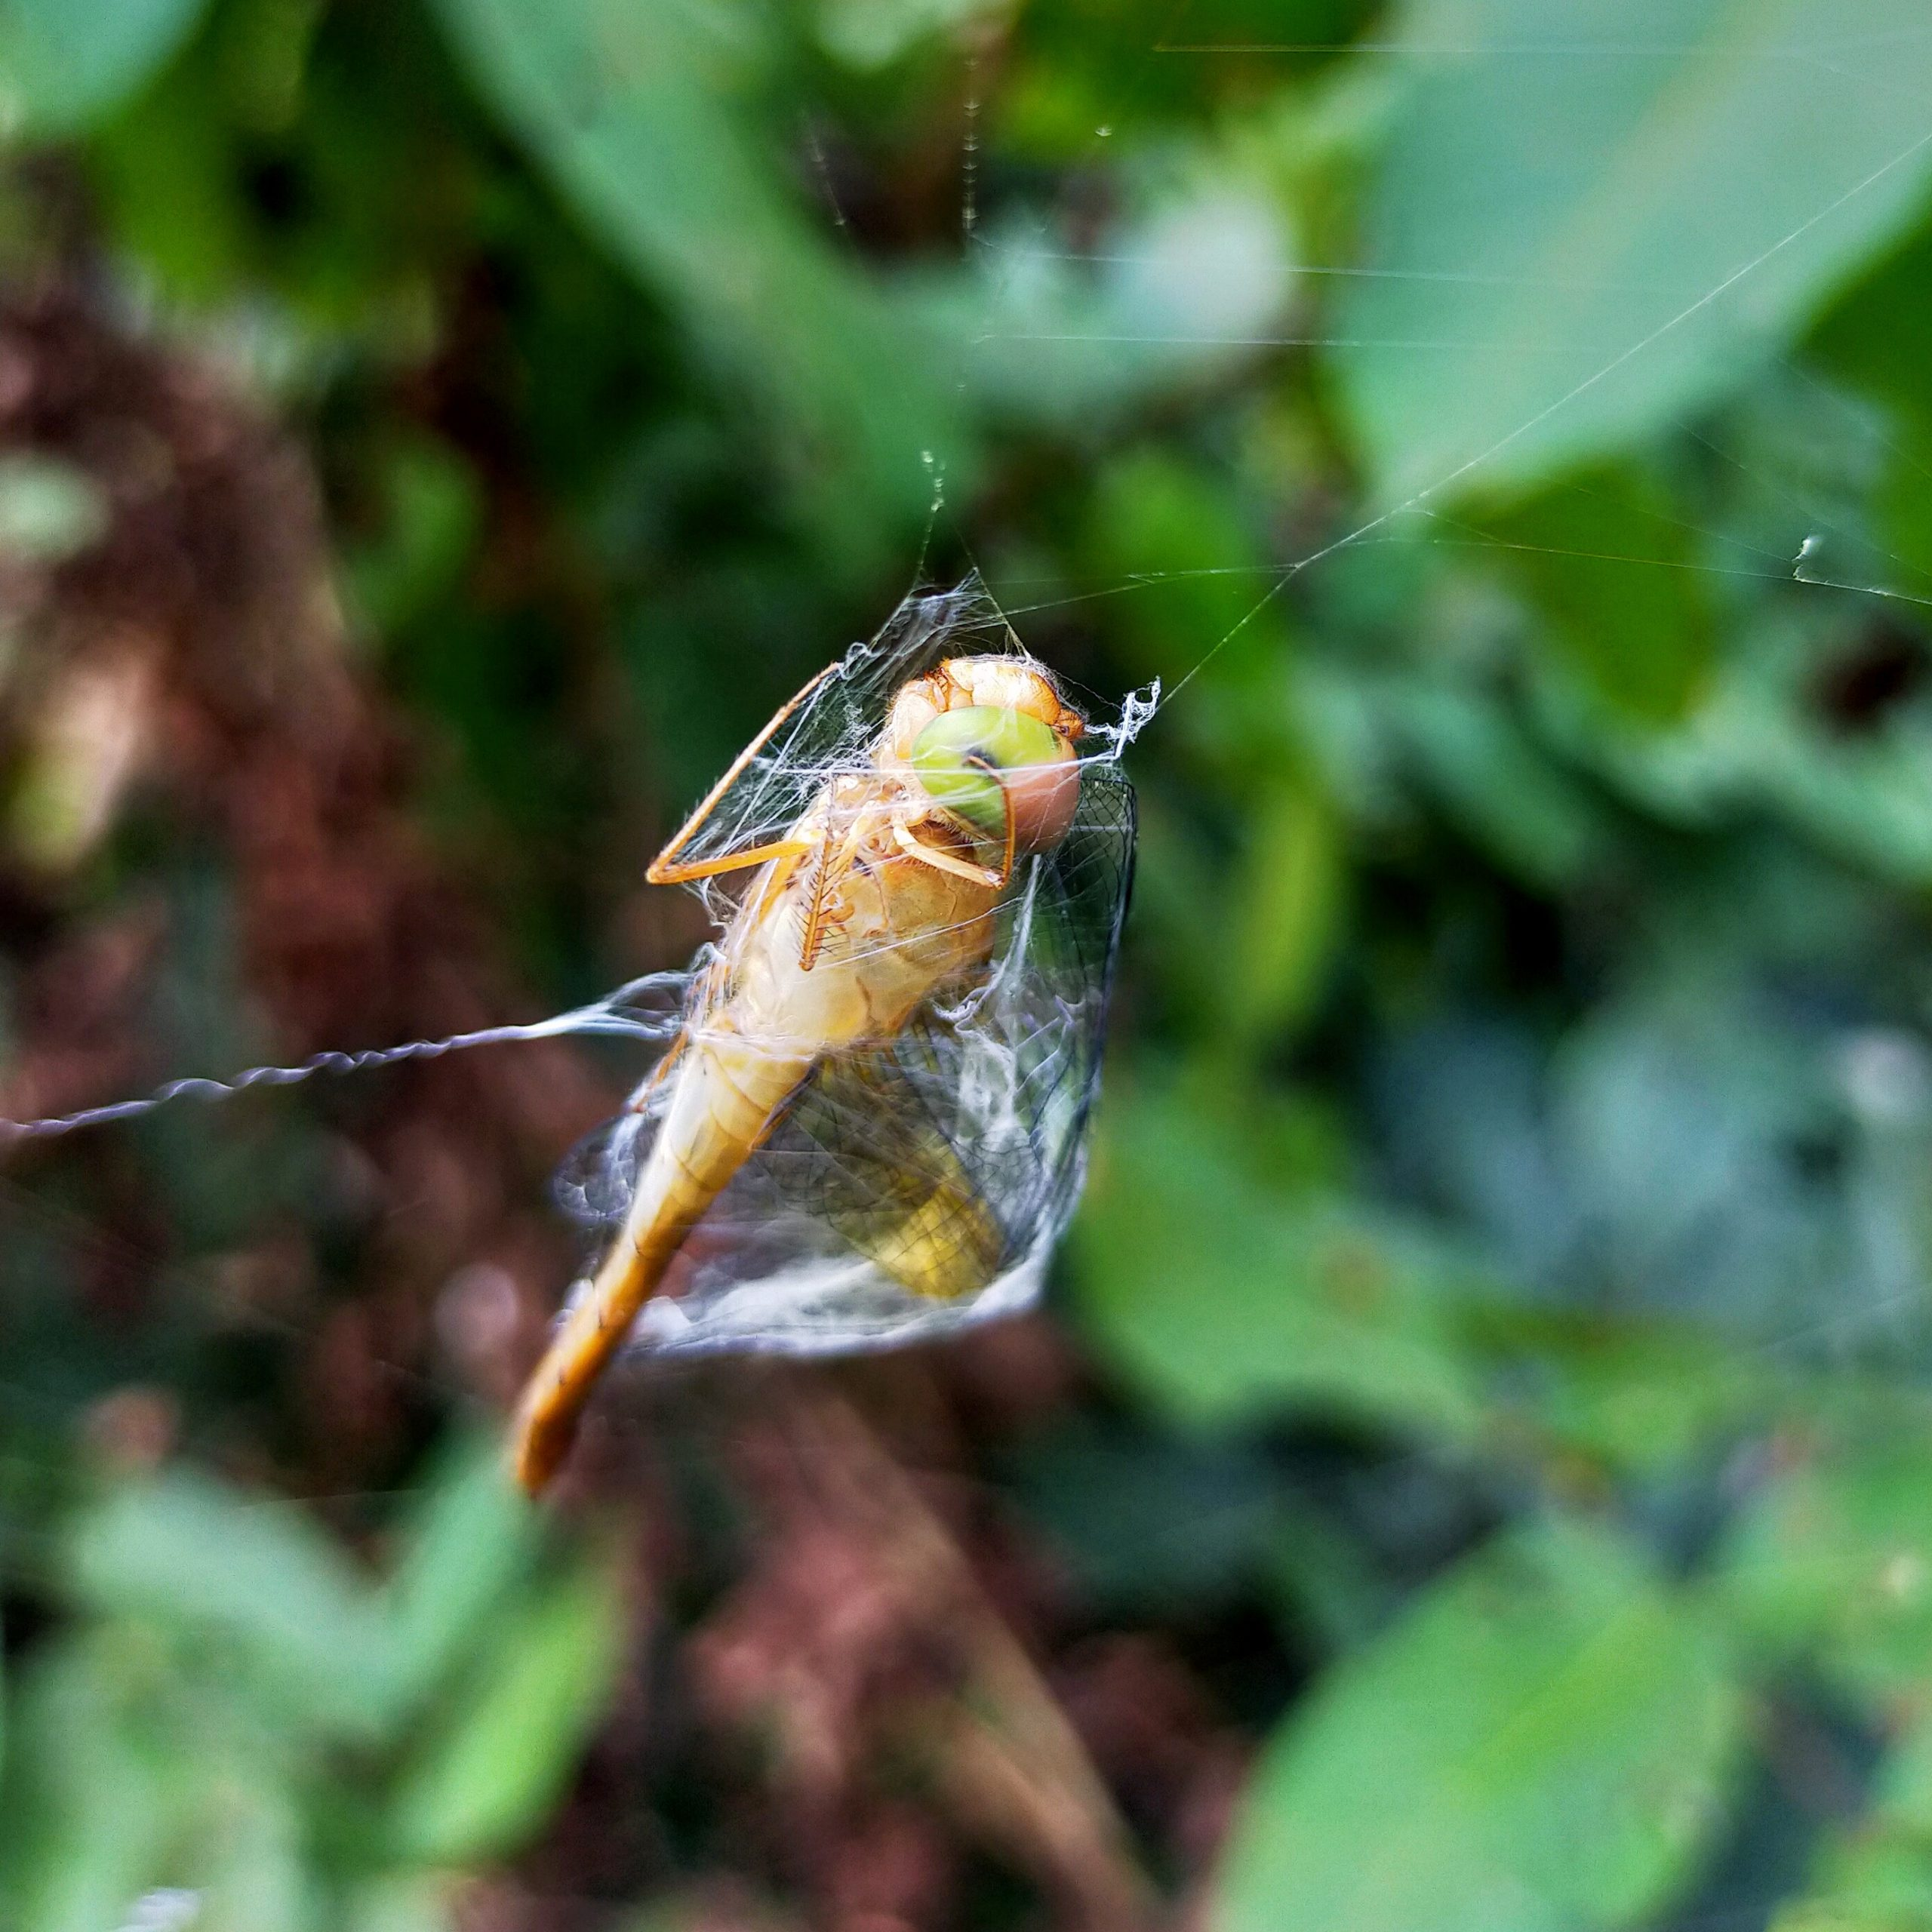 A dragonfly trapped in spider web